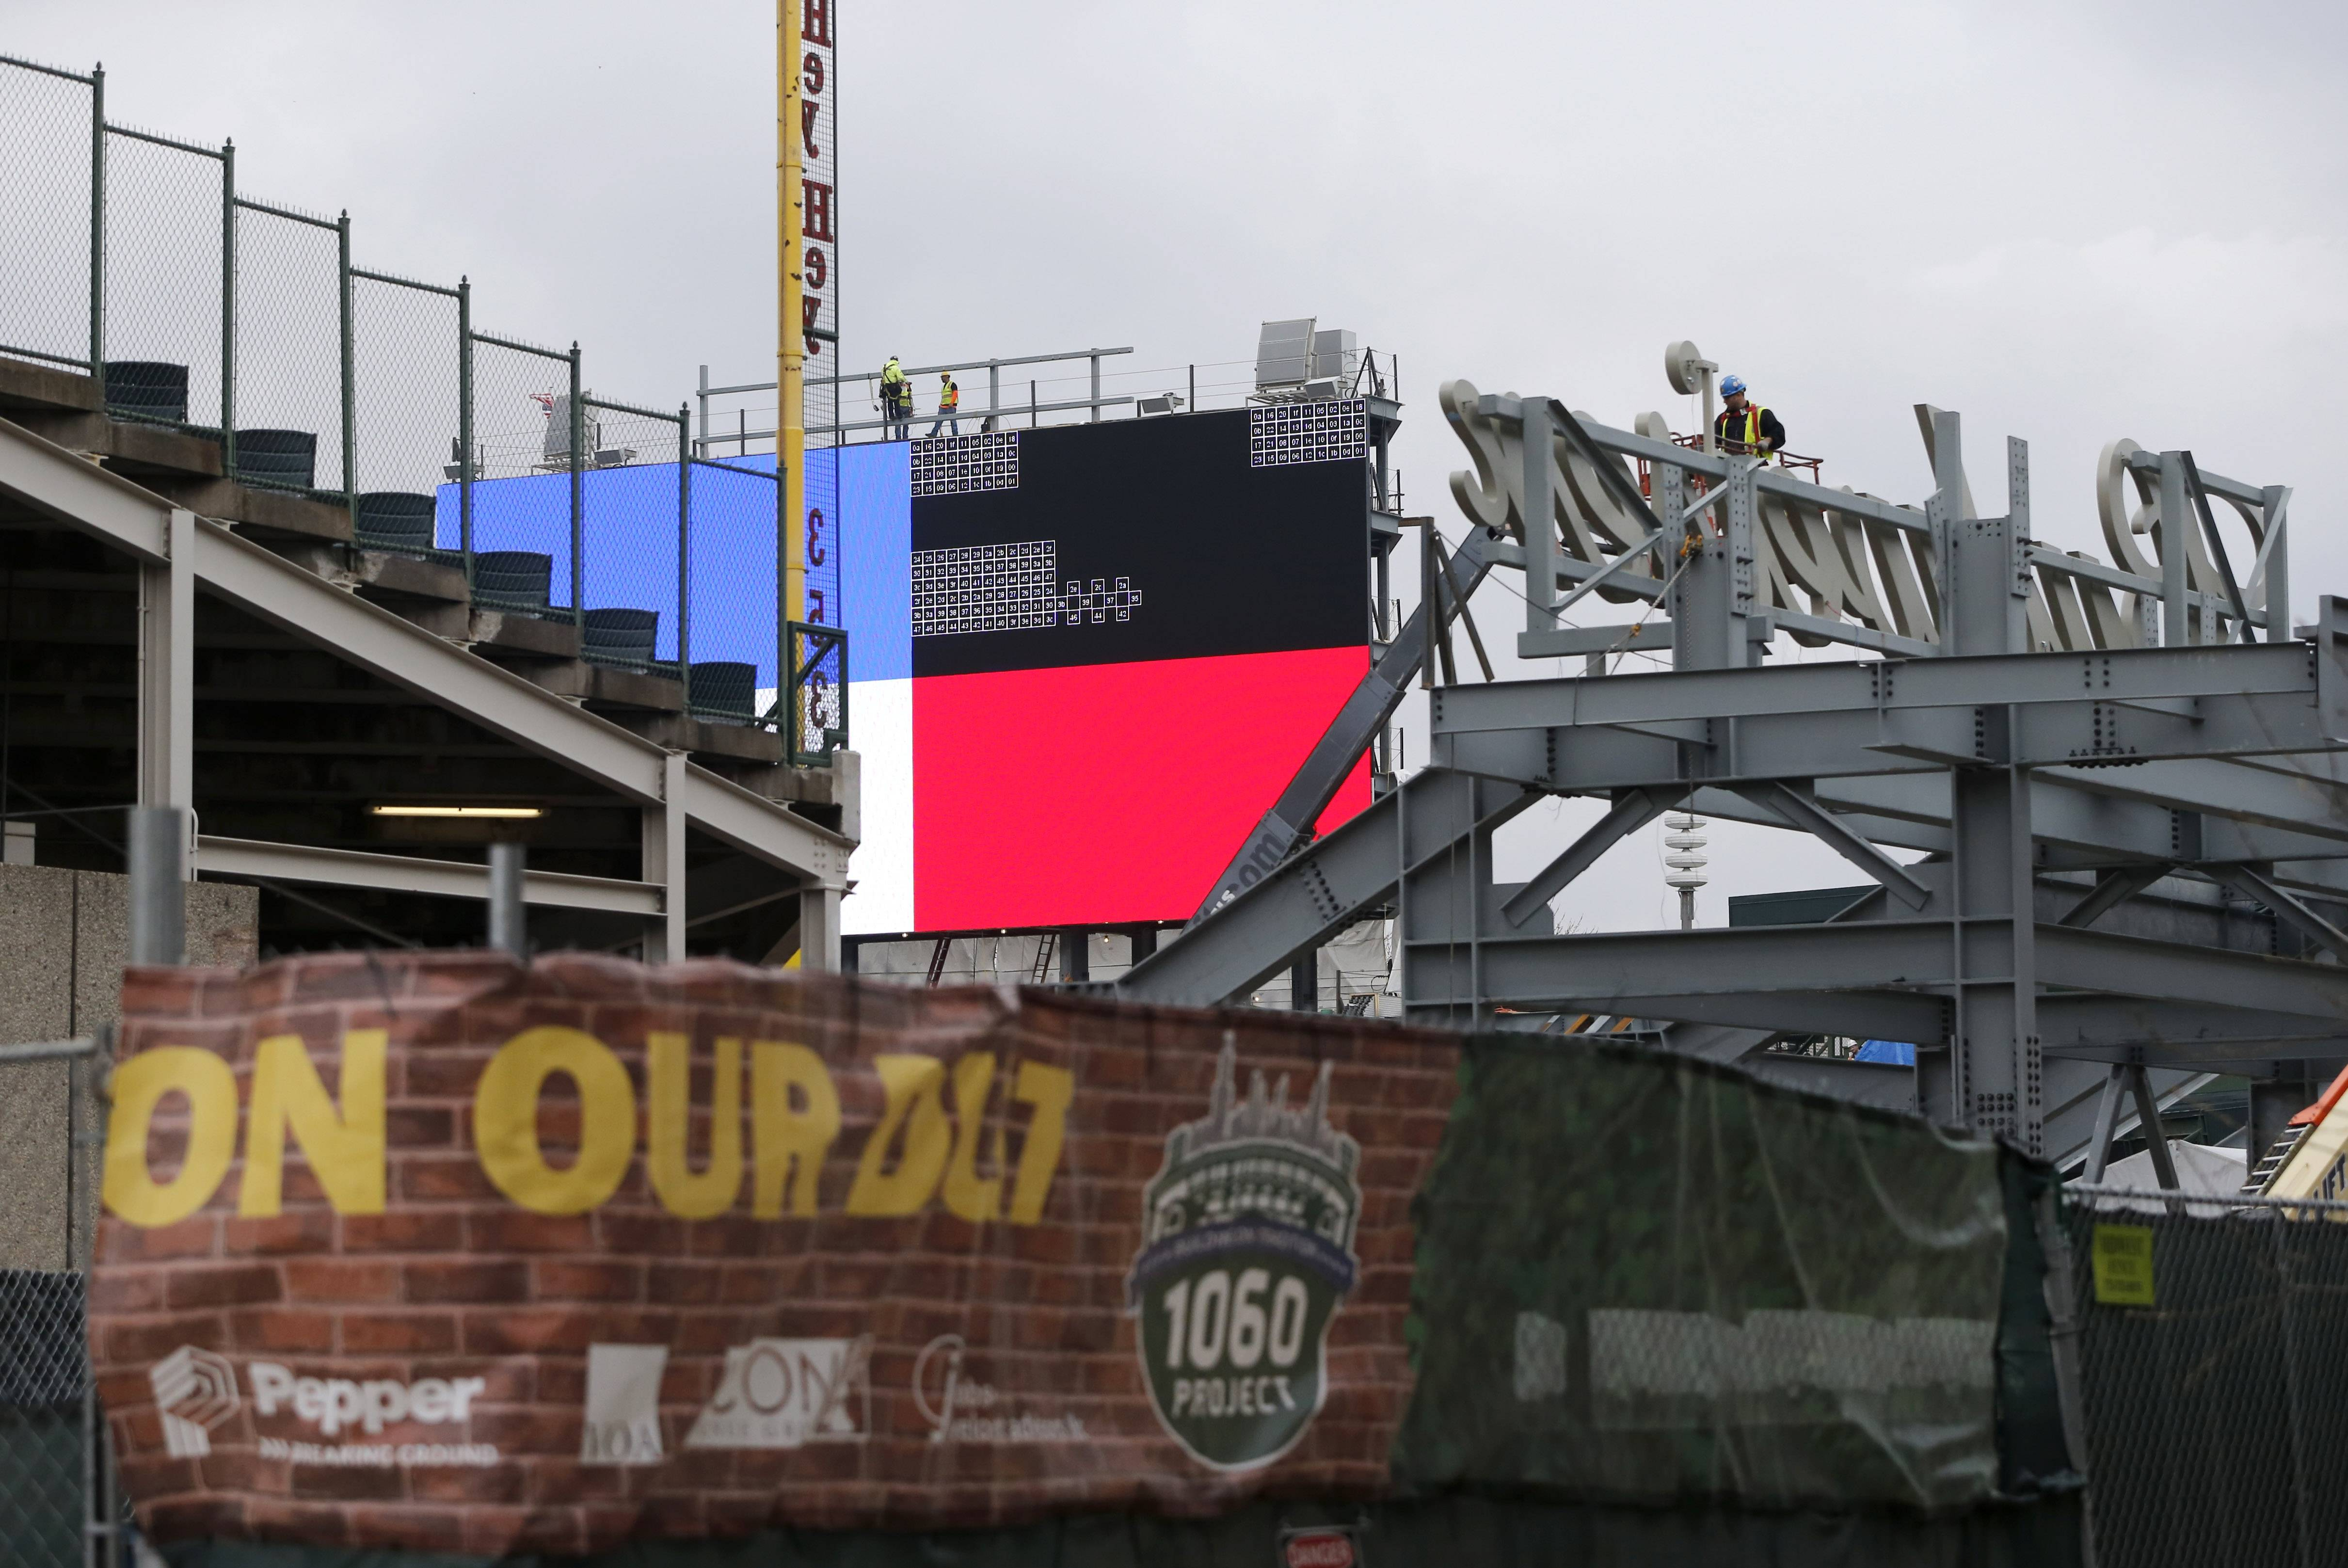 Construction continued on renovations to Wrigley Field Thursday including the installation of a Jumbotron above the left field bleachers, background, and a Budweiser sign in right field.